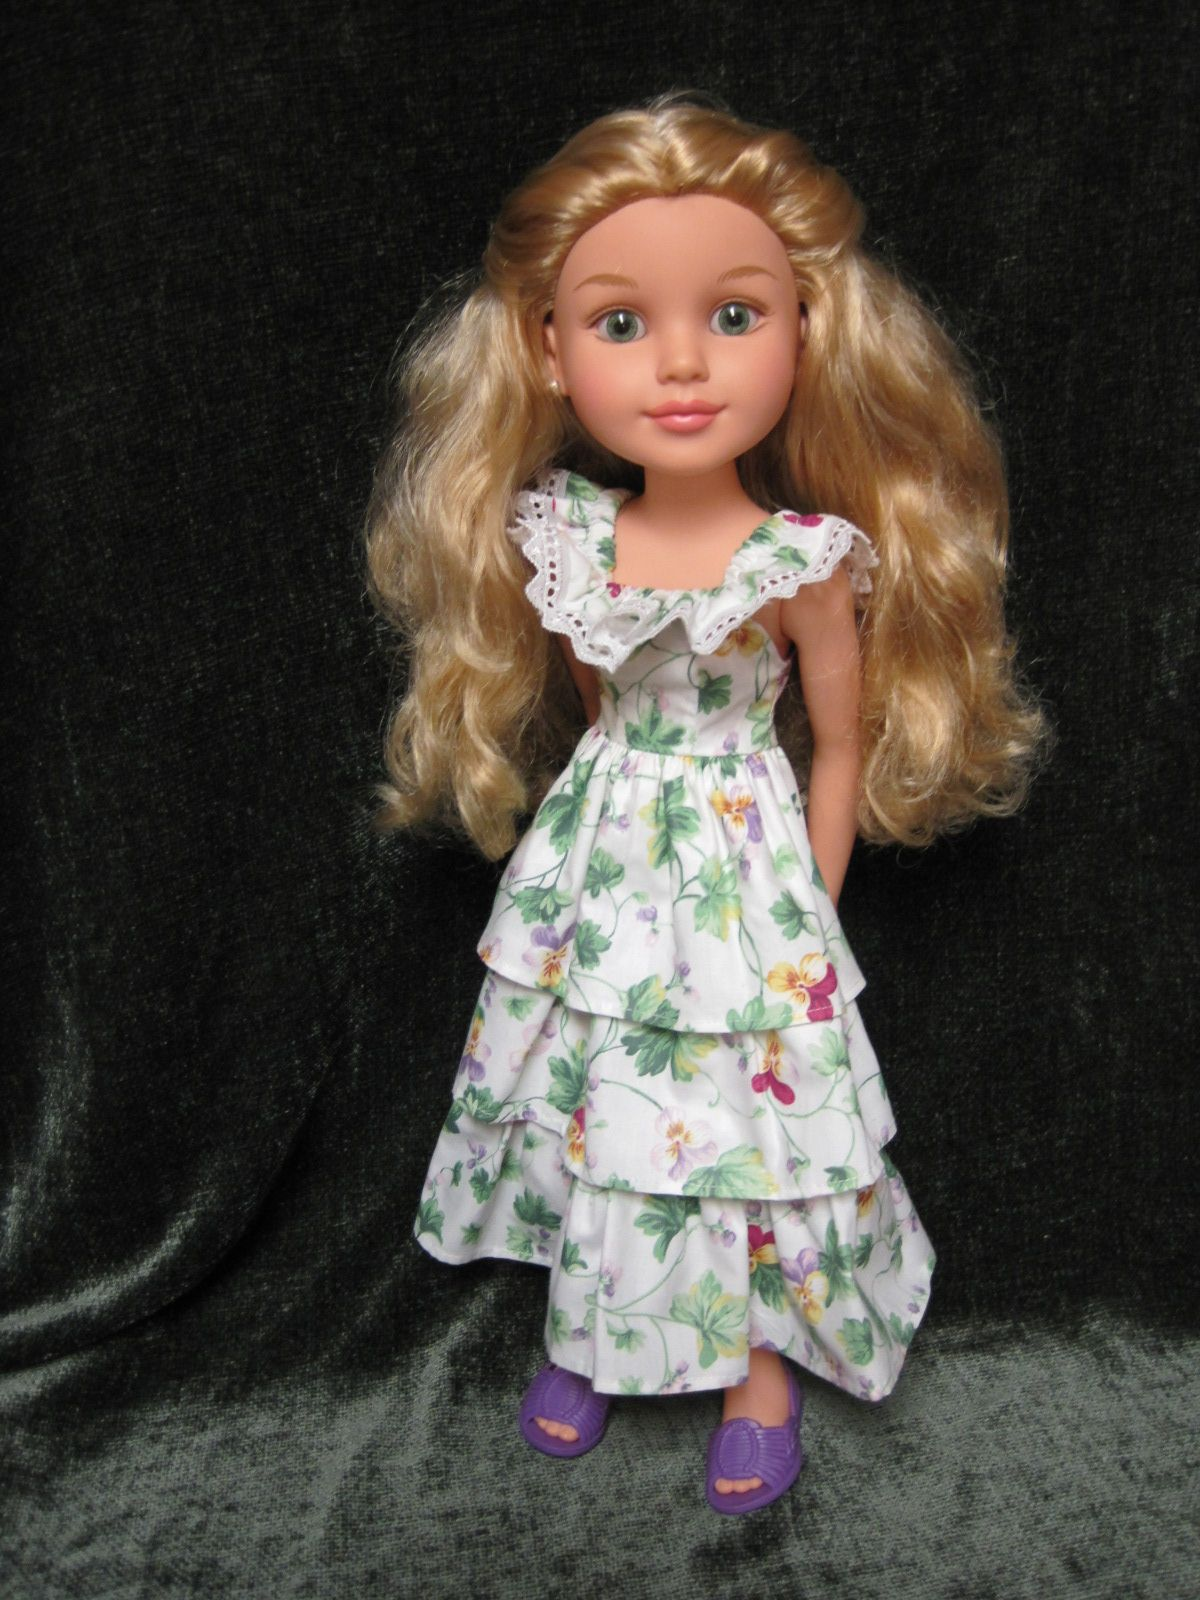 bfc ink dolls | Some New Clothes for Katelyn (My BFC Ink Doll ...